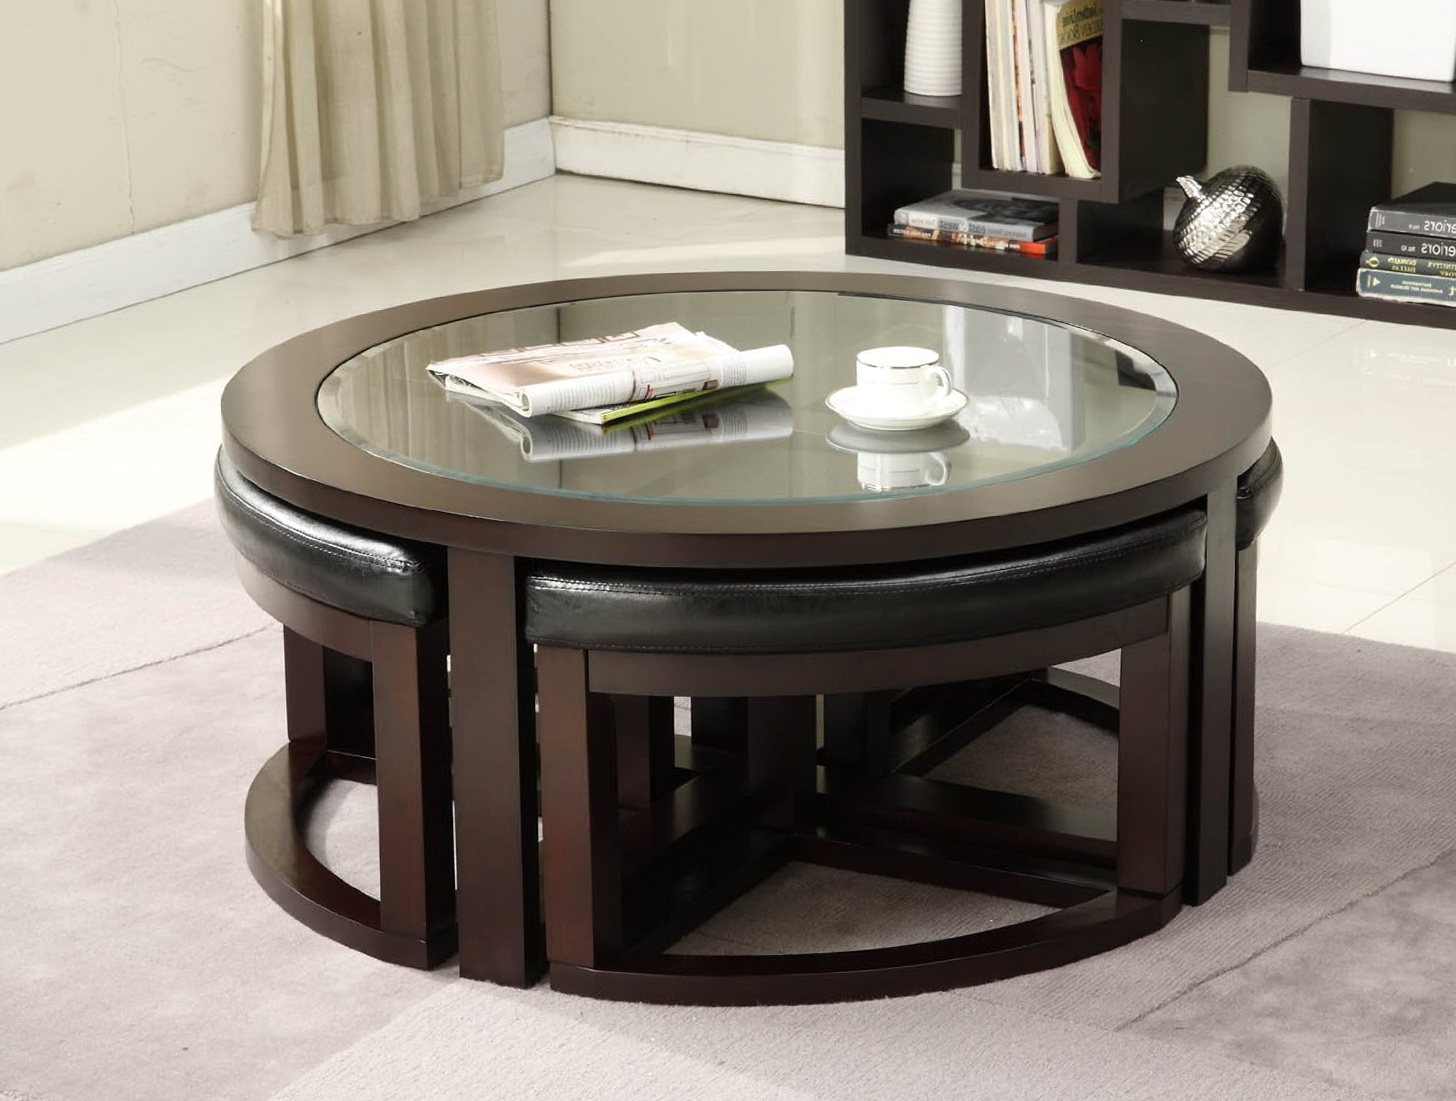 a round coffee table with friends